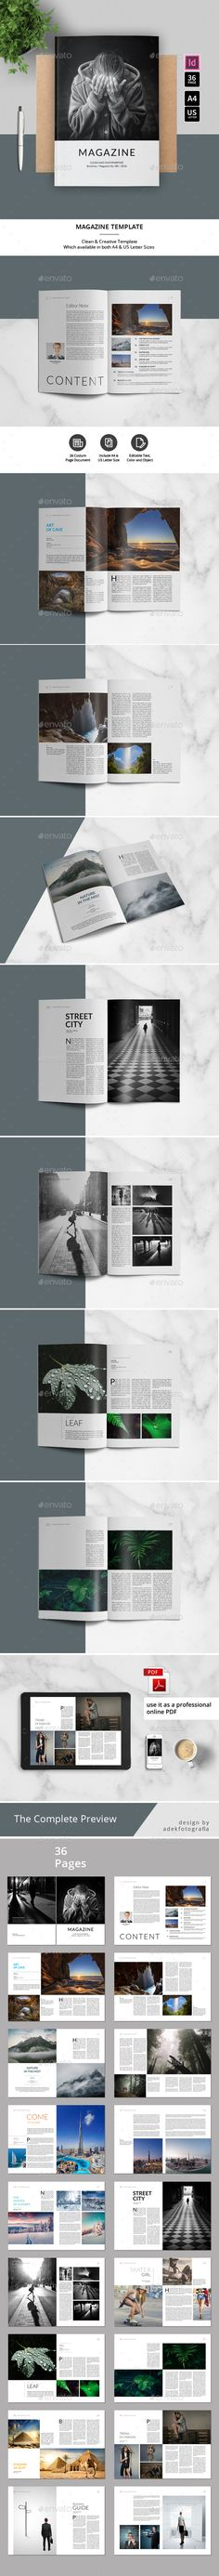 Magazine Template — InDesign INDD #magazine template #8.5x11 • Download ➝ https://graphicriver.net/item/magazine-template/19453130?ref=pxcr